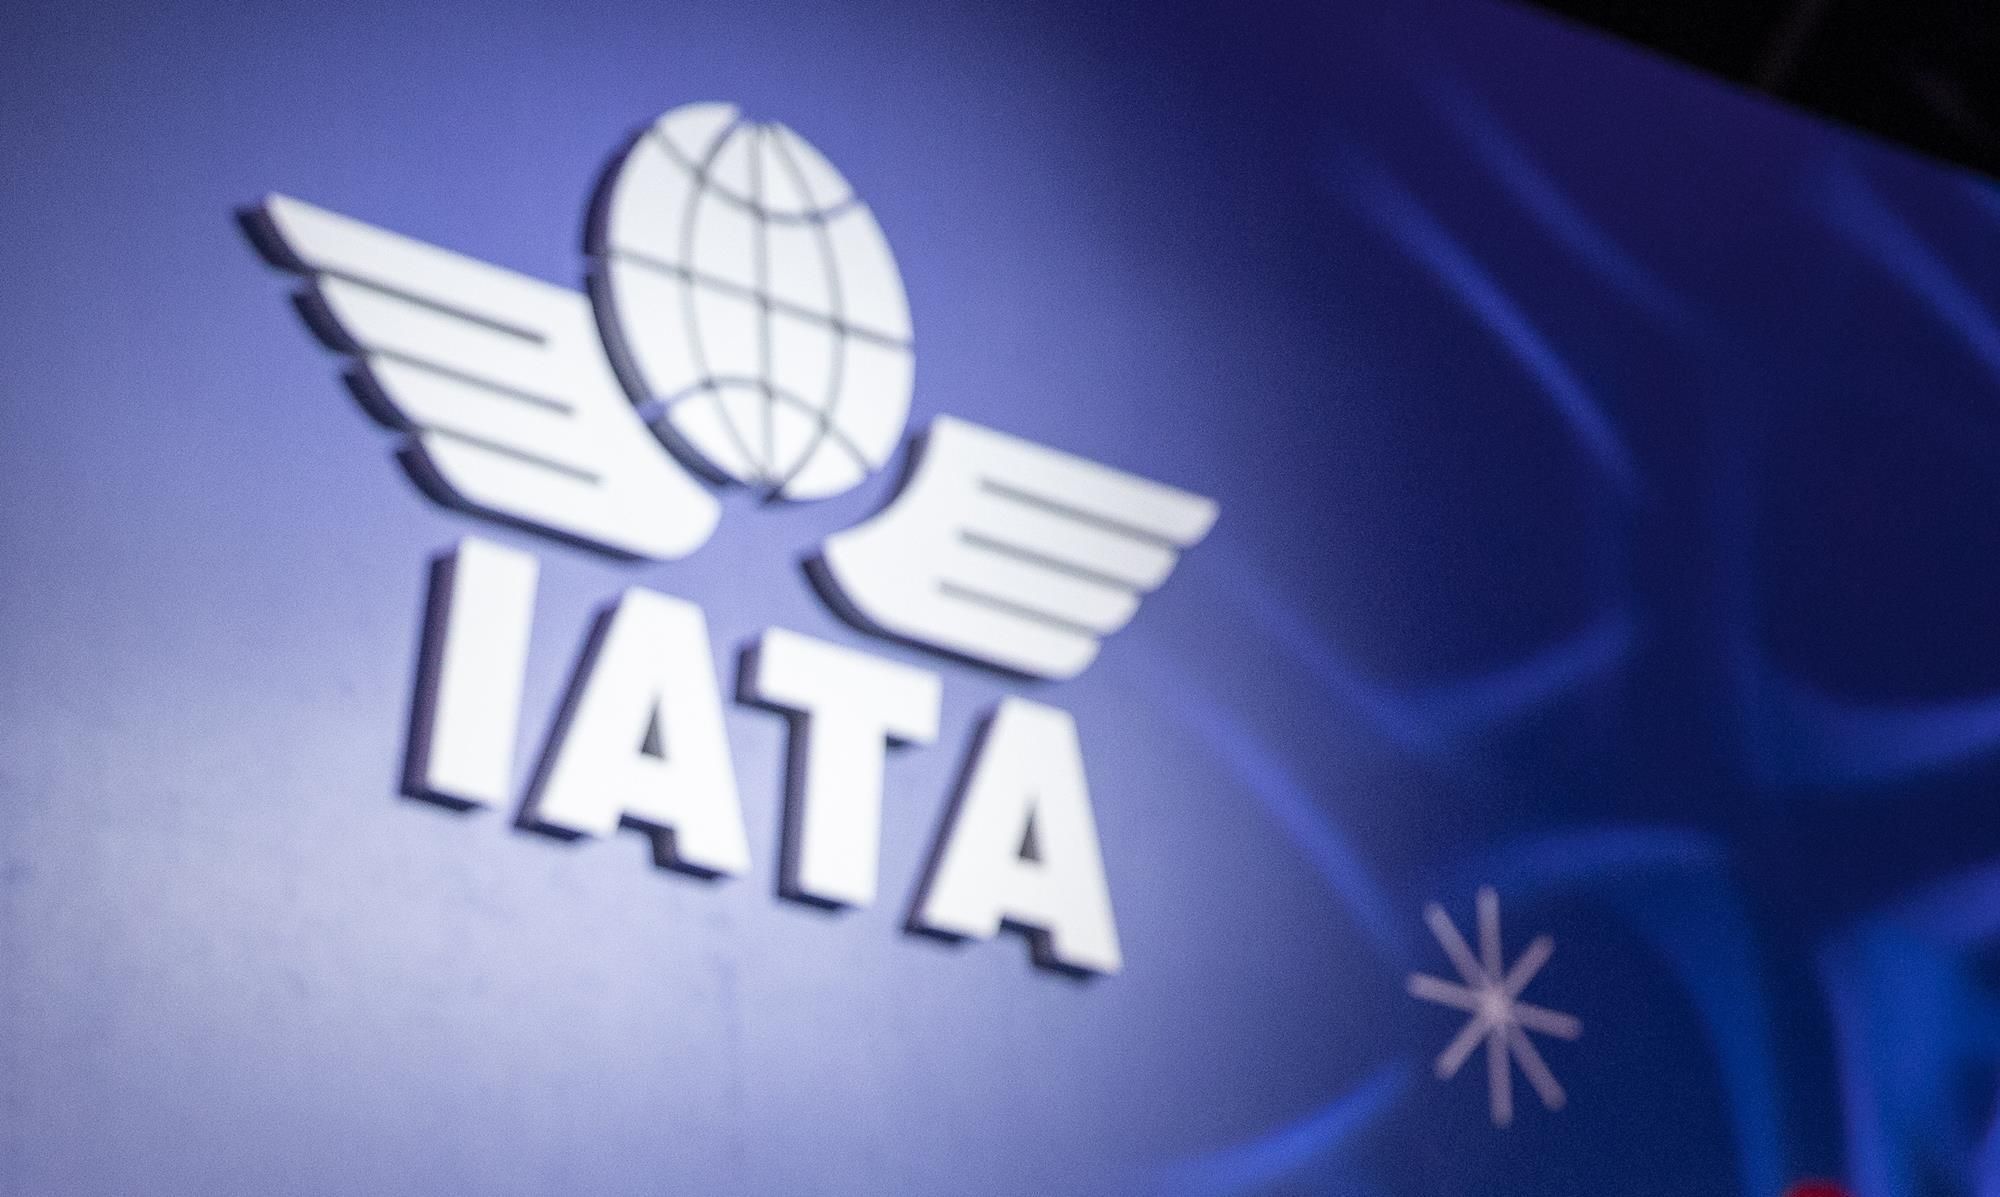 IATA-United-Airlines-recommendations-air-travel-internet-bull-report